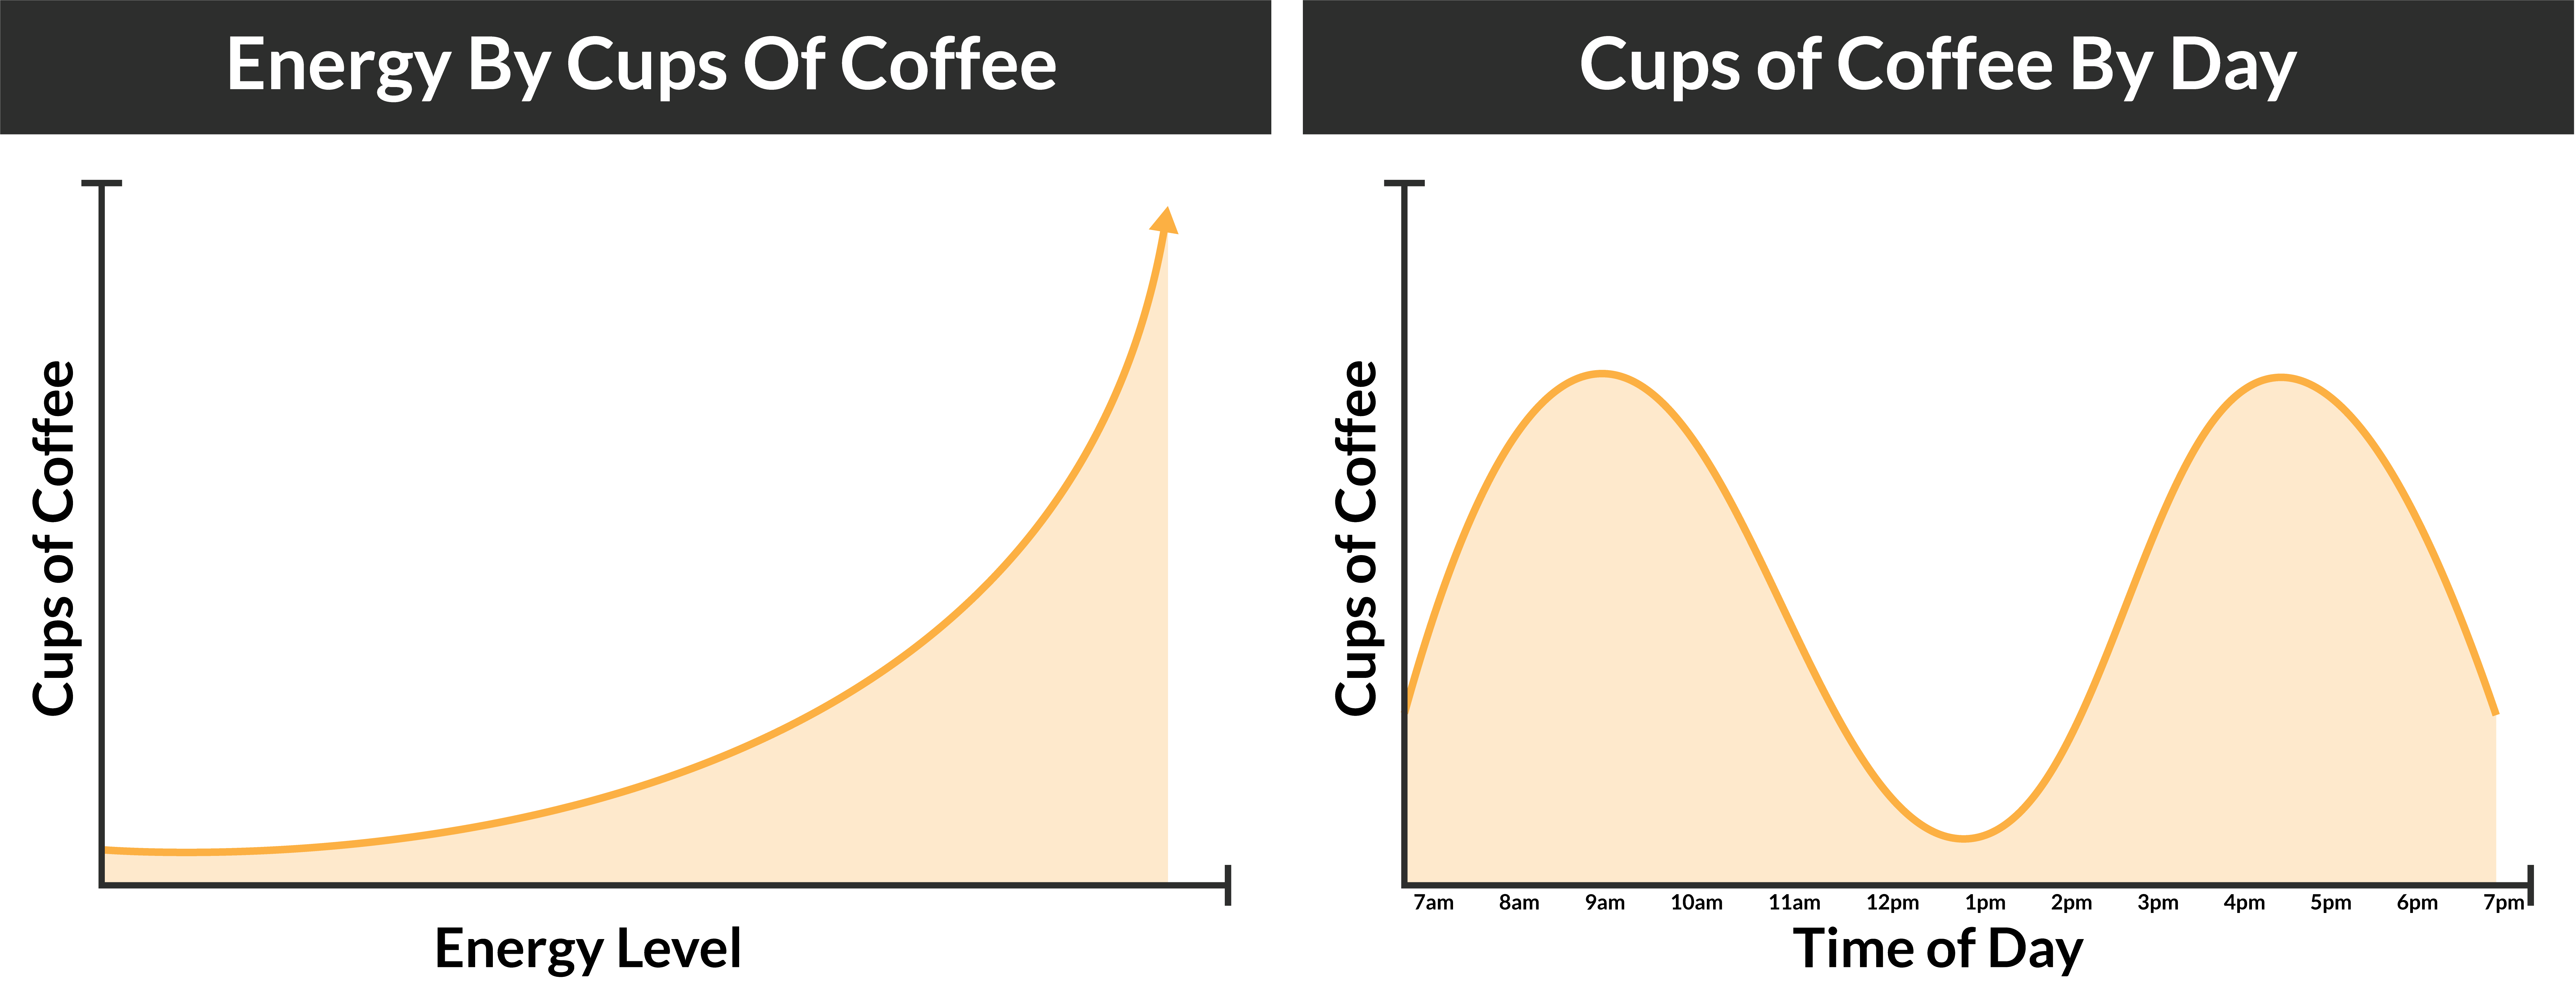 Combined Cups of Coffee Graphs